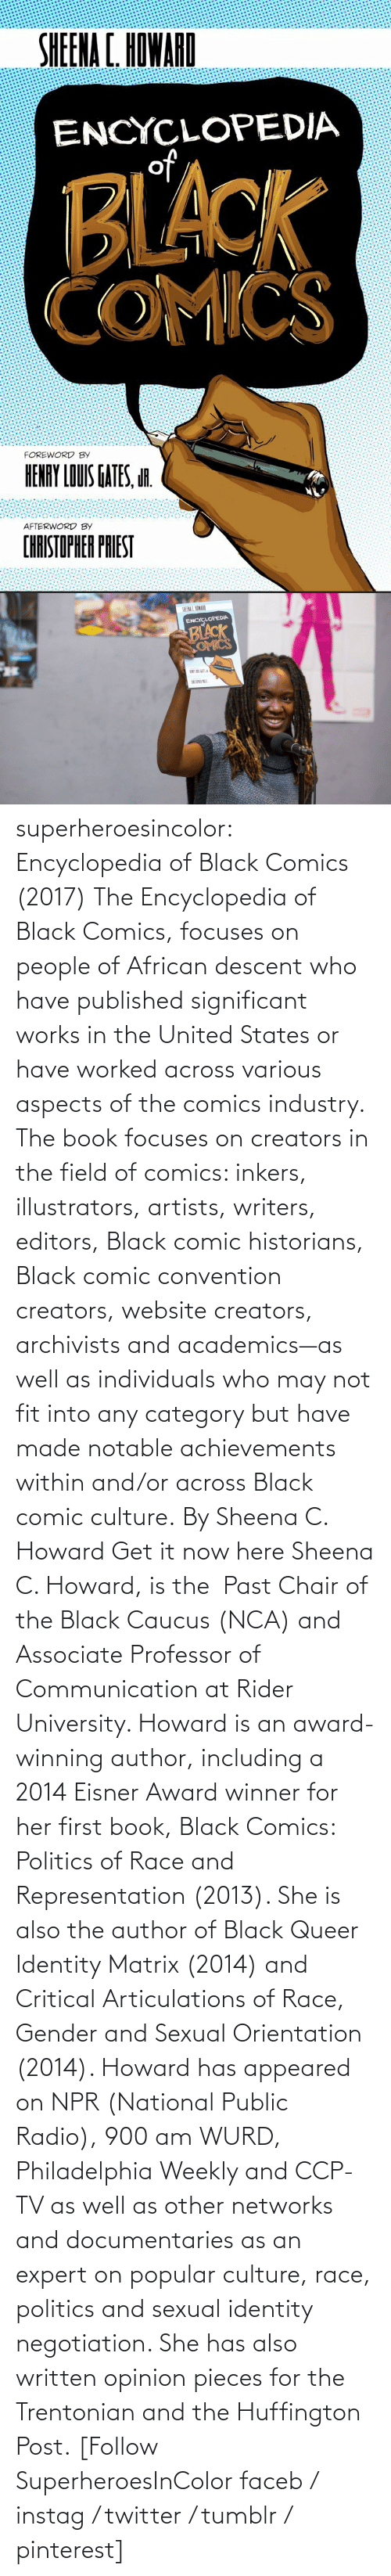 communication: superheroesincolor: Encyclopedia of Black Comics (2017) The Encyclopedia of Black Comics, focuses on people of African descent who have published significant works in the United States or have worked across various aspects of the comics industry.  The book focuses on creators in the field of comics: inkers, illustrators, artists, writers, editors, Black comic historians, Black comic convention creators, website creators, archivists and academics—as well as individuals who may not fit into any category but have made notable achievements within and/or across Black comic culture. By Sheena C. Howard Get it now here  Sheena C. Howard, is the  Past Chair of the Black Caucus (NCA) and Associate Professor of Communication at Rider University. Howard is an award-winning author, including a 2014 Eisner Award winner for her first book, Black Comics: Politics of Race and Representation (2013). She is also the author of Black Queer Identity Matrix (2014) and Critical Articulations of Race, Gender and Sexual Orientation (2014). Howard has appeared on NPR (National Public Radio), 900 am WURD, Philadelphia Weekly and CCP-TV as well as other networks and documentaries as an expert on popular culture, race, politics and sexual identity negotiation. She has also written opinion pieces for the Trentonian and the Huffington Post.   [Follow SuperheroesInColor faceb / instag / twitter / tumblr / pinterest]